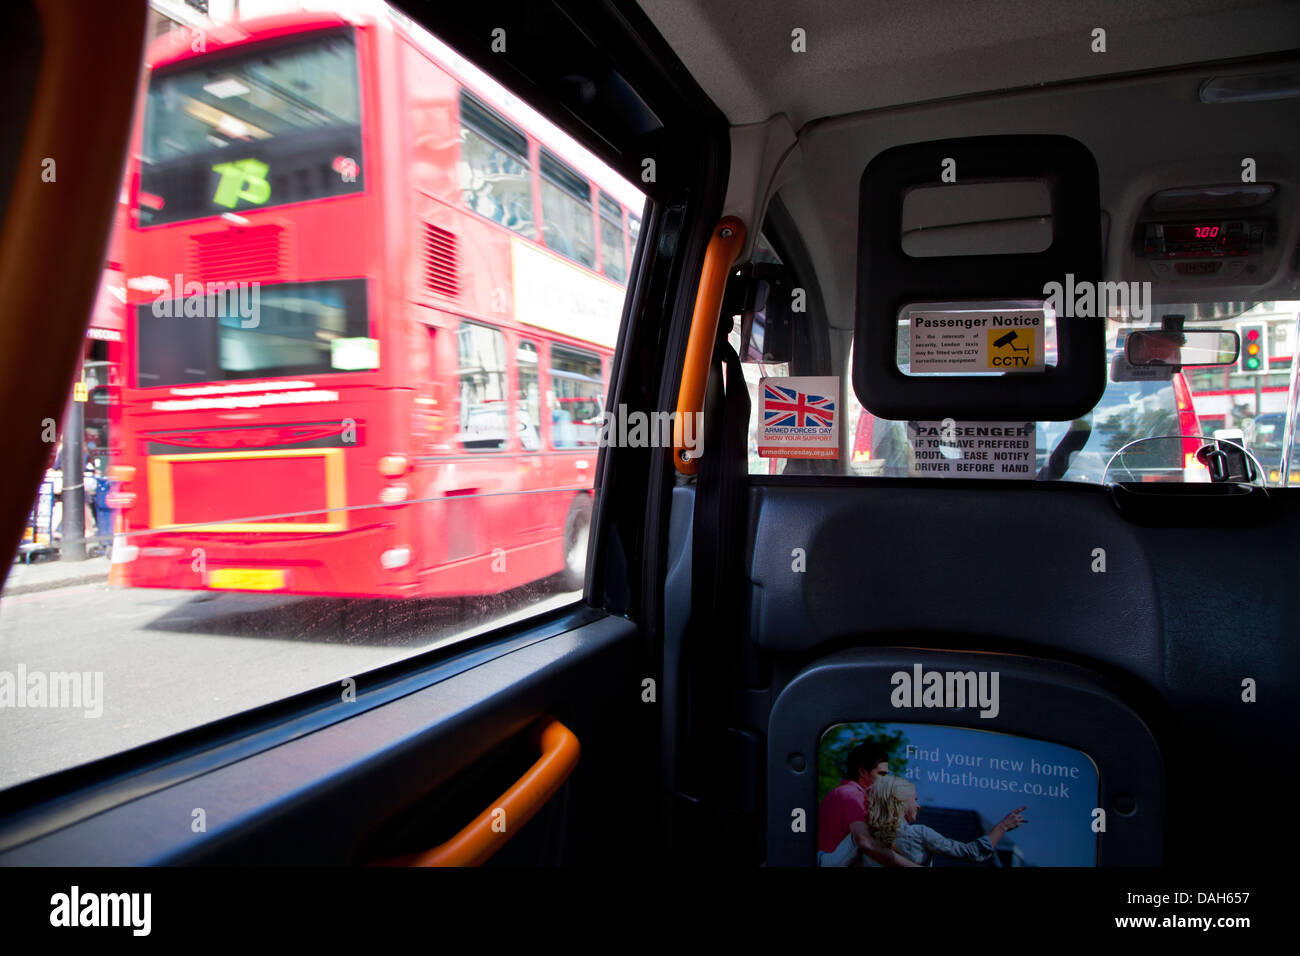 View from inside taxi looking at London red bus going by. - Stock Image